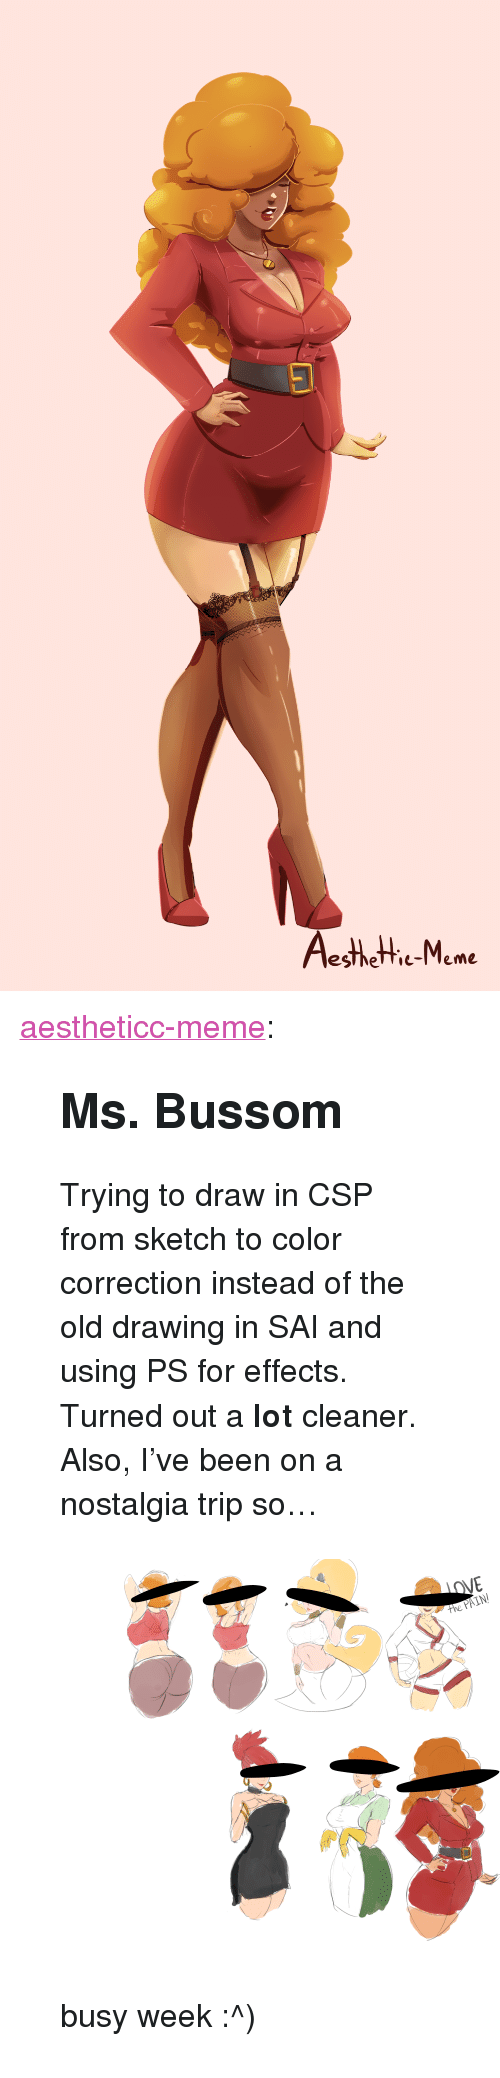 """Correction: esthetie-Meme <p><a href=""""https://aestheticc-meme.tumblr.com/post/172005564959/ms-bussom-trying-to-draw-in-csp-from-sketch-to"""" class=""""tumblr_blog"""" target=""""_blank"""">aestheticc-meme</a>:</p>  <blockquote><h2><b>Ms. Bussom</b></h2><p>Trying to draw in CSP from sketch to color correction instead of the old drawing in SAI and using PS for effects. Turned out a <b>lot</b> cleaner.</p><p>Also, I've been on a nostalgia trip so…</p><figure class=""""tmblr-full"""" data-orig-height=""""7313"""" data-orig-width=""""10073""""><img src=""""https://78.media.tumblr.com/280b587b6197f92252b7e23116986d17/tumblr_inline_p5svm2oTcJ1sdoznj_540.png"""" data-orig-height=""""7313"""" data-orig-width=""""10073""""/></figure><p>busy week :^)</p></blockquote>"""